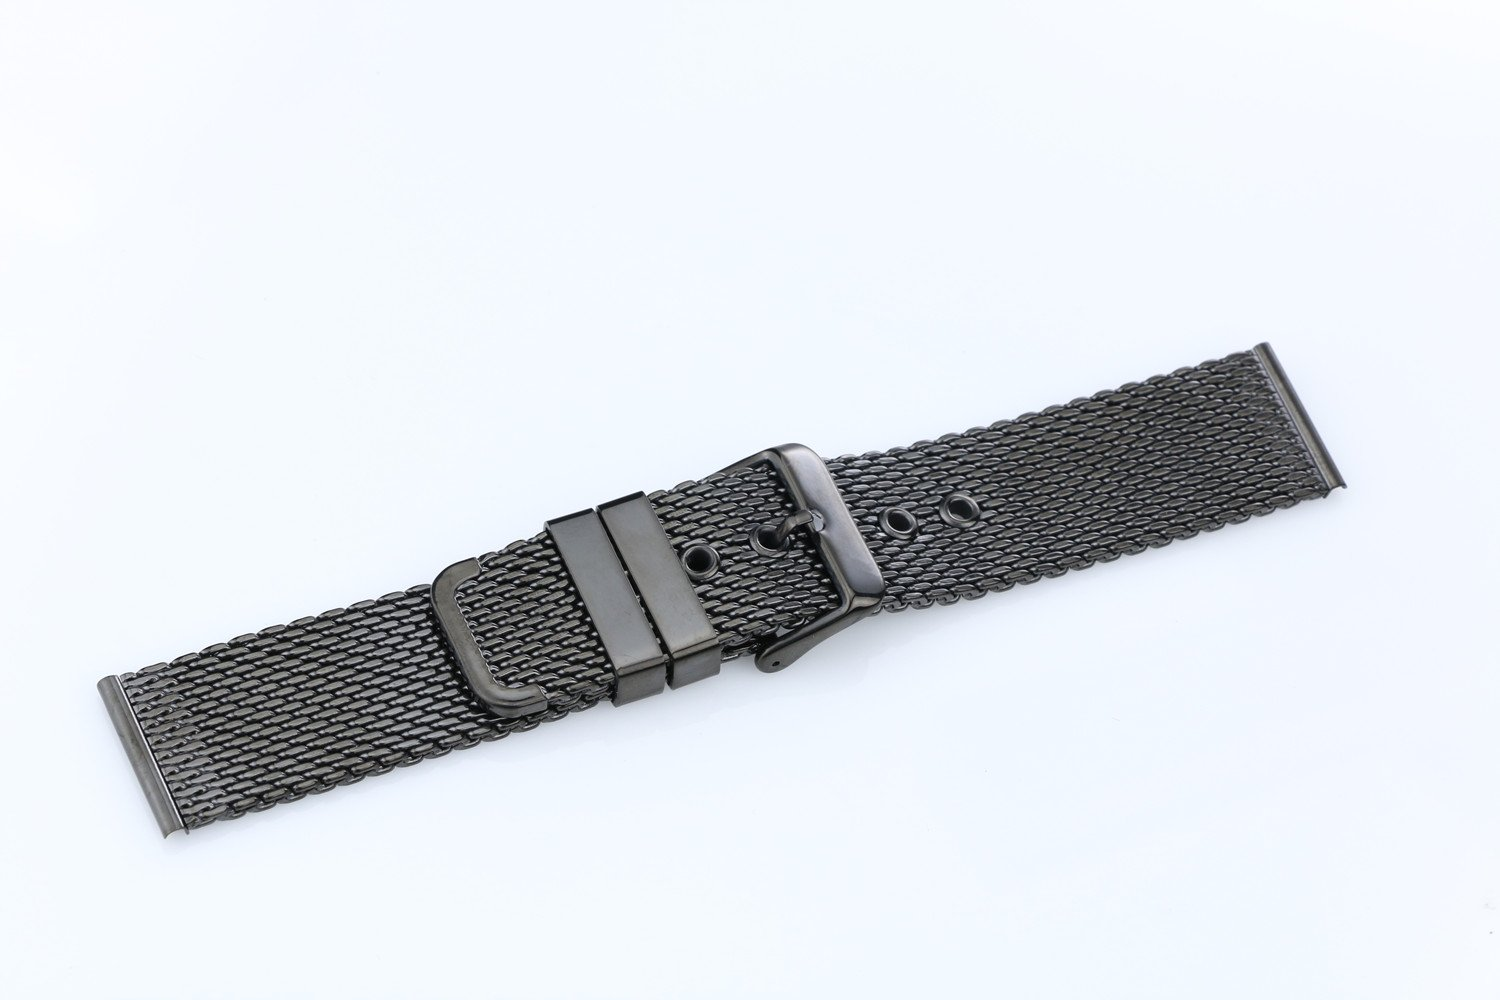 22mm High-Grade Black Stainless Steel Mesh Watch Band for Men Brushed Chain Watch Strap With Pin Clasp by autulet (Image #4)